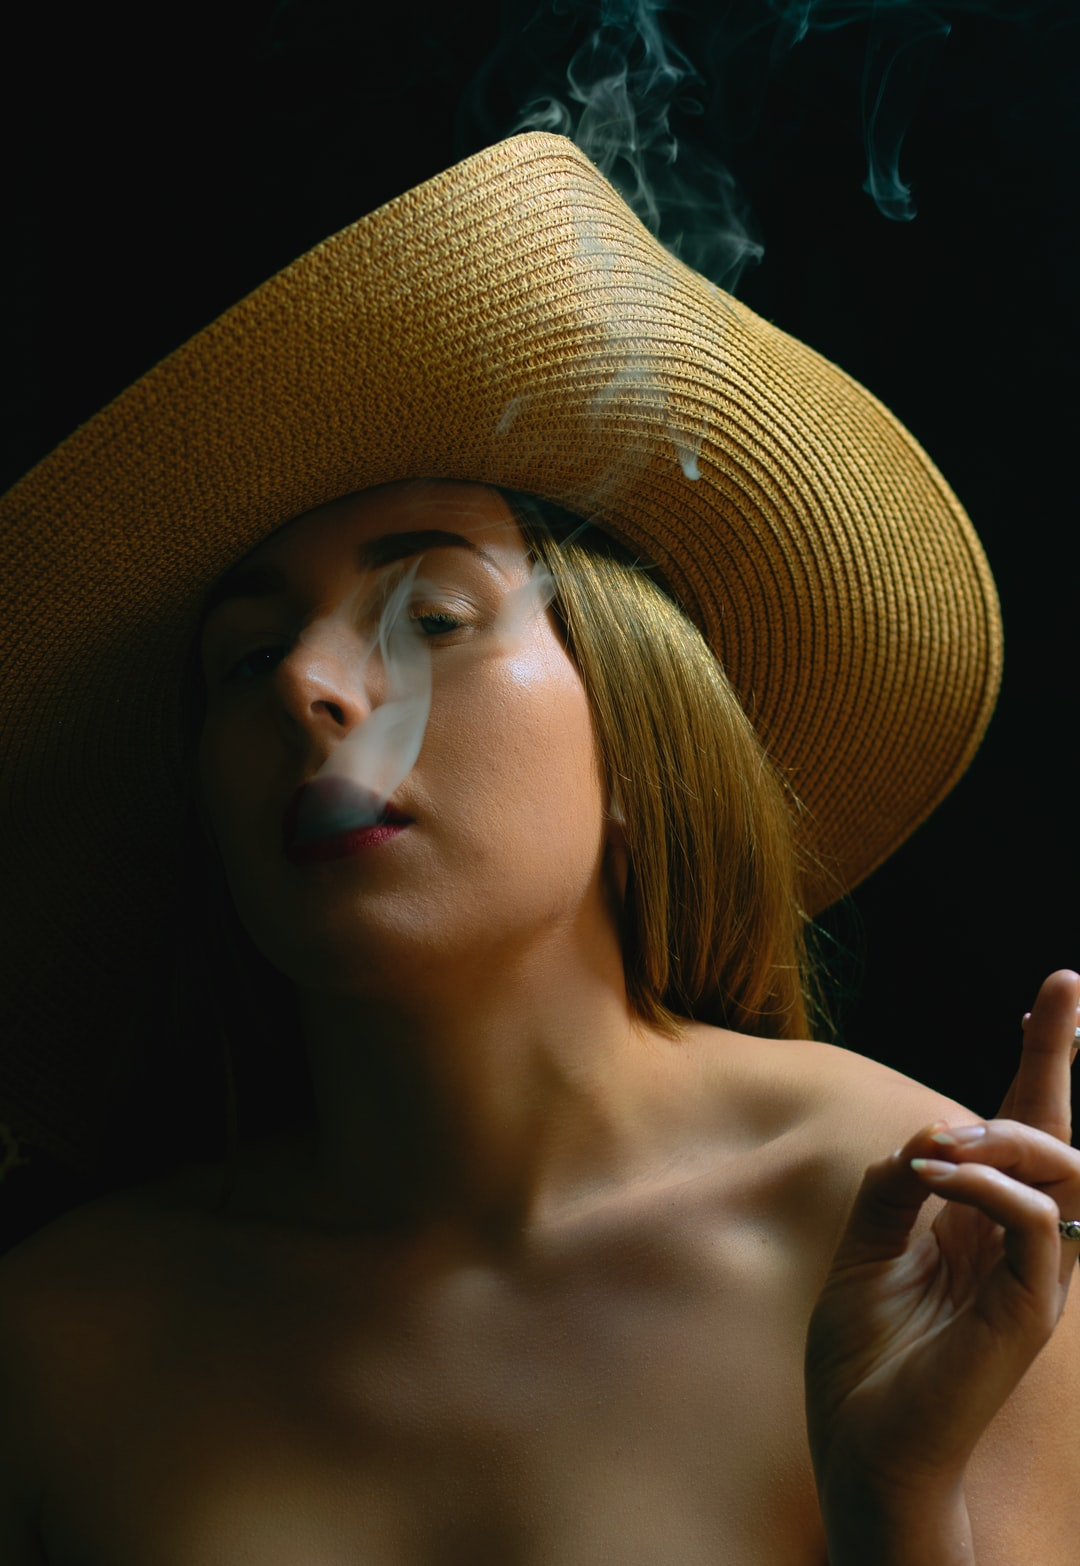 Girl smoking with floppy hat looking at camera side on